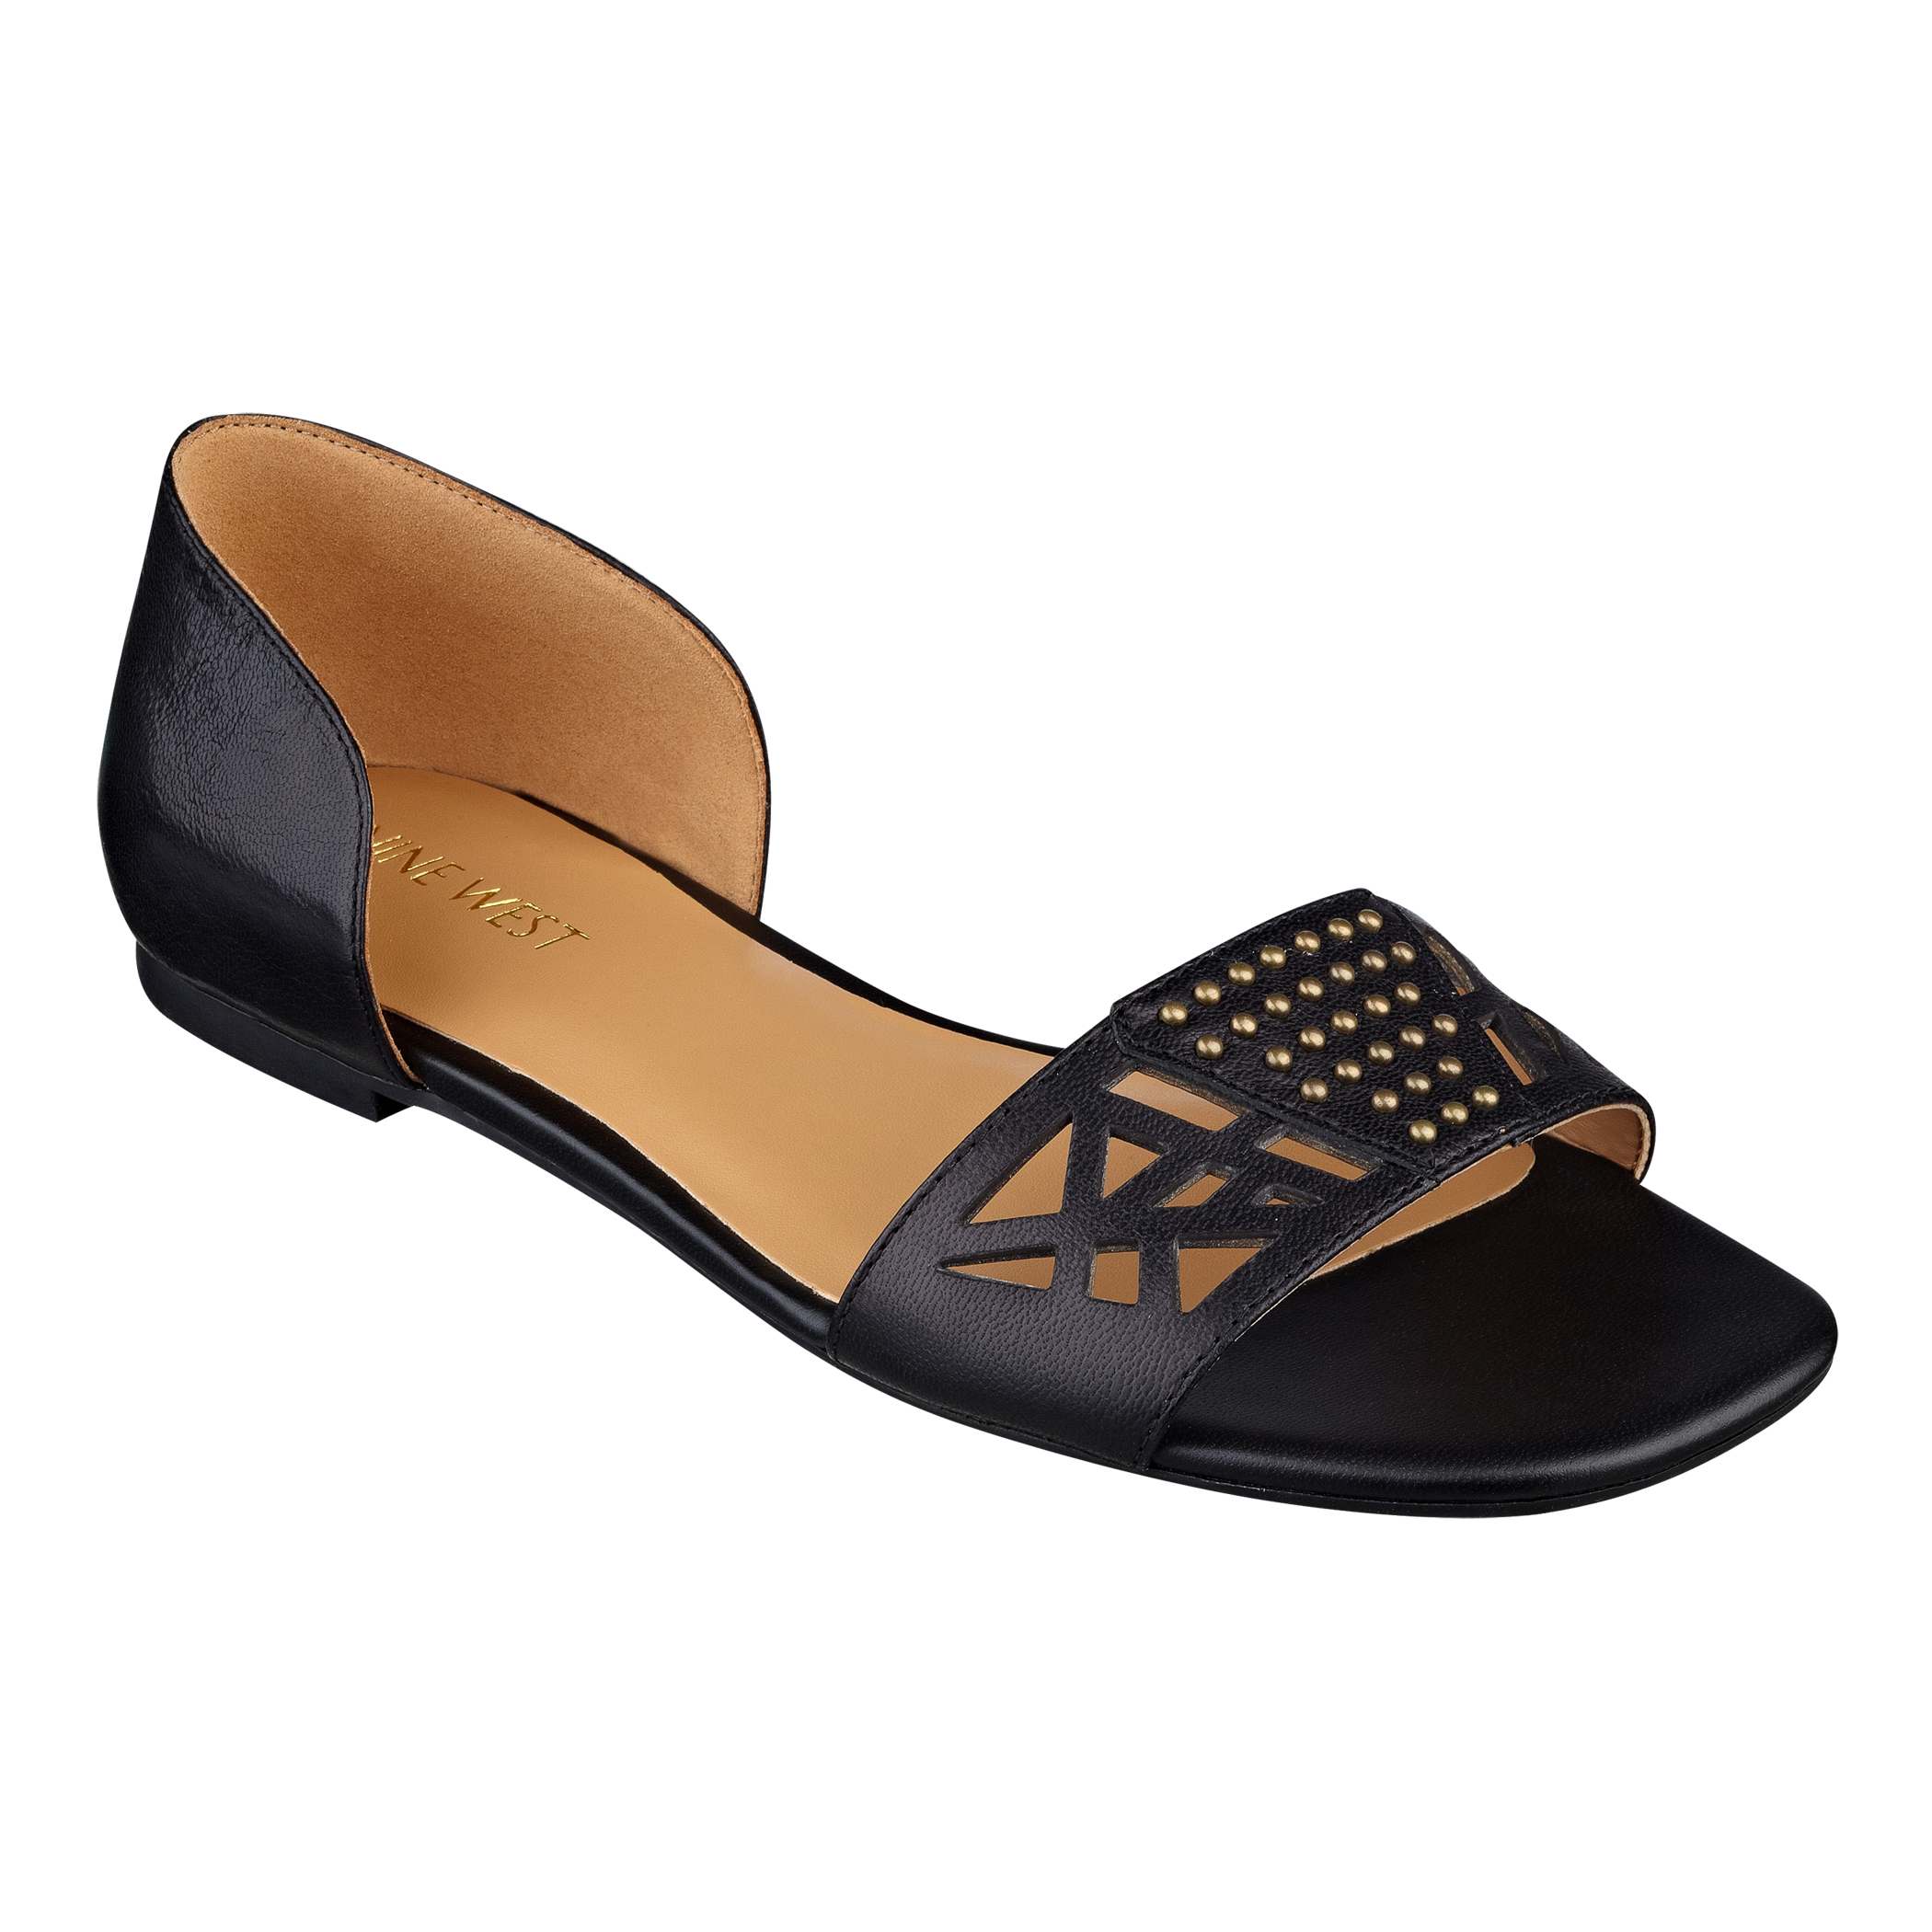 Find great deals on eBay for black peep toe flats. Shop with confidence.